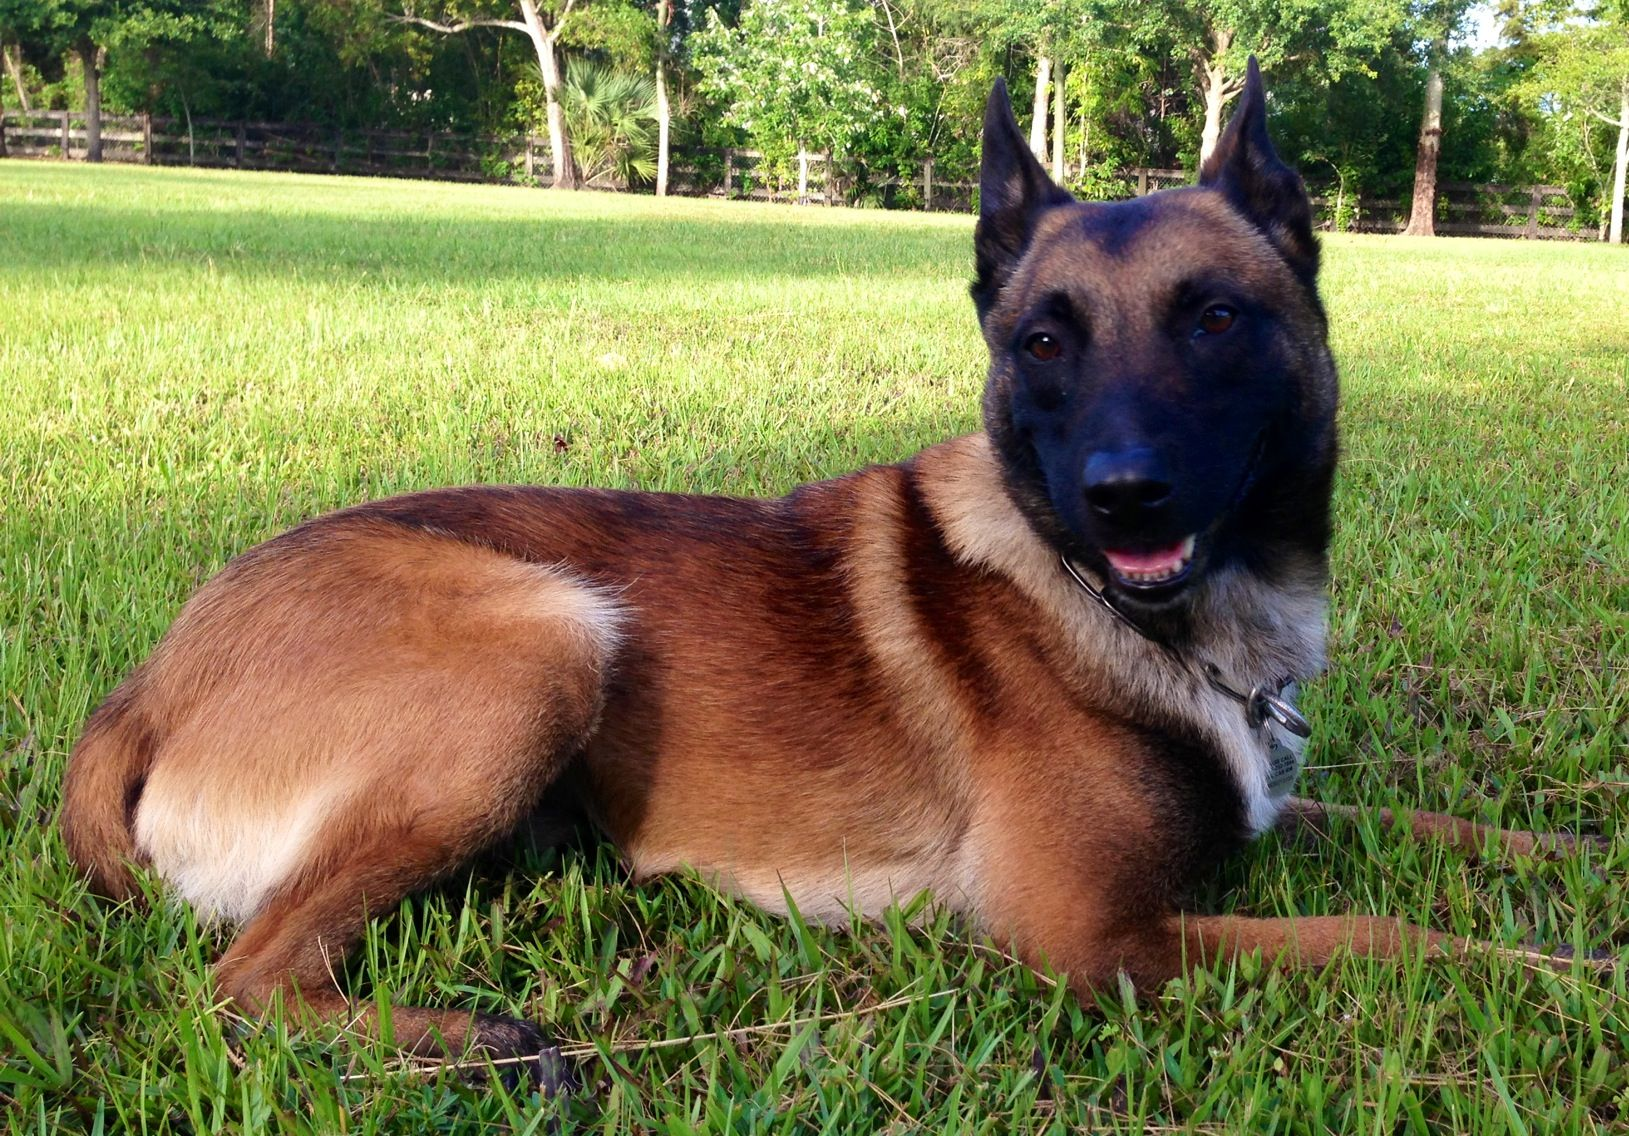 Robbie Knpv Ph1 Royal Dutch Police Certified Police Dog Social Dog With Outstanding Drives The Ferrari Of Dogs Ver Family Protection Dogs Dogs Dogs For Sale